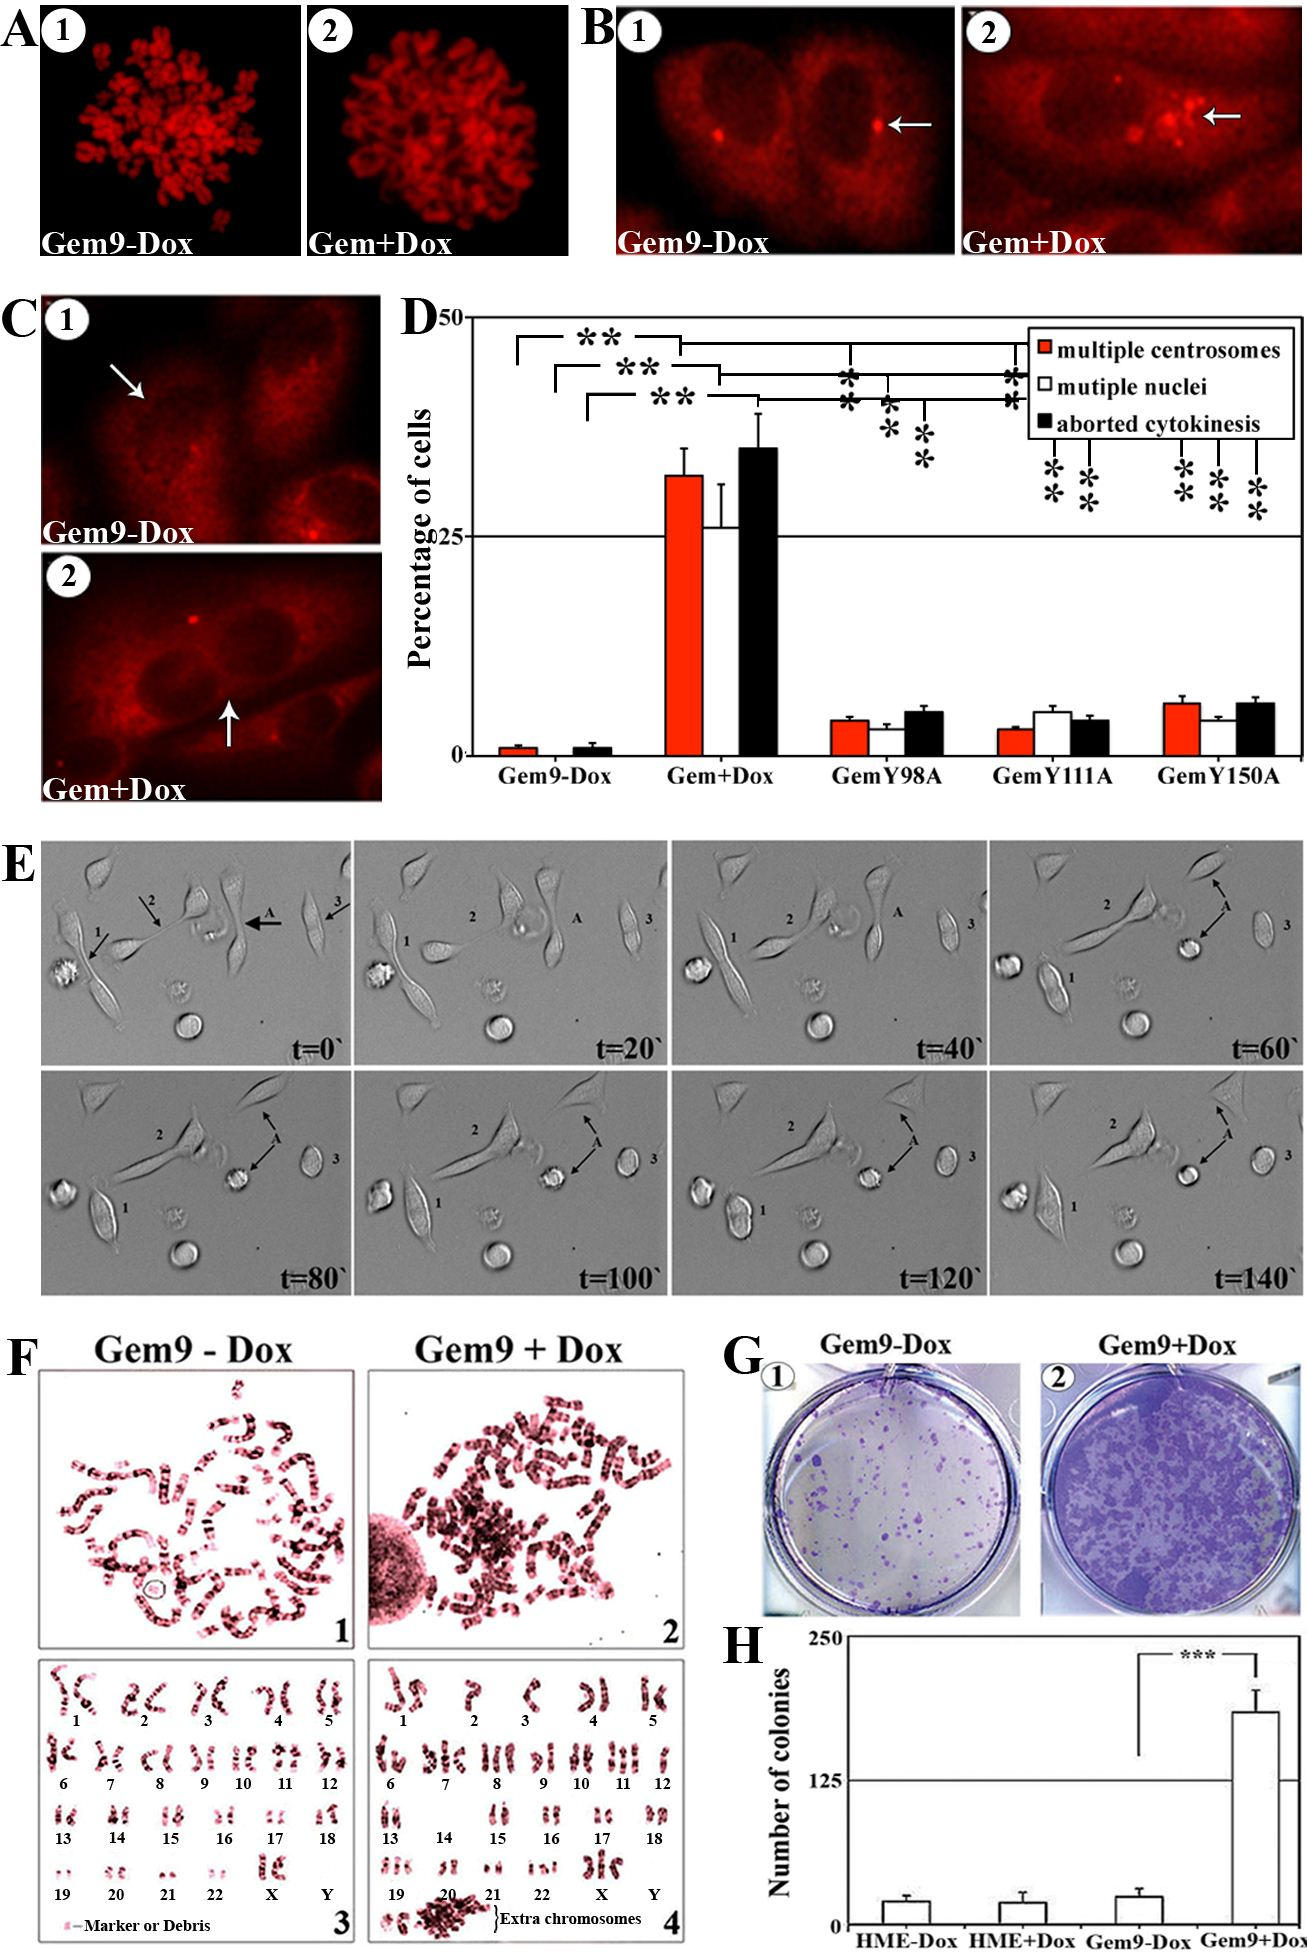 The effect of geminin overexpression on chromosome condensation, centrosome number, cytokinesis, ploidy and transformation in HME cells,